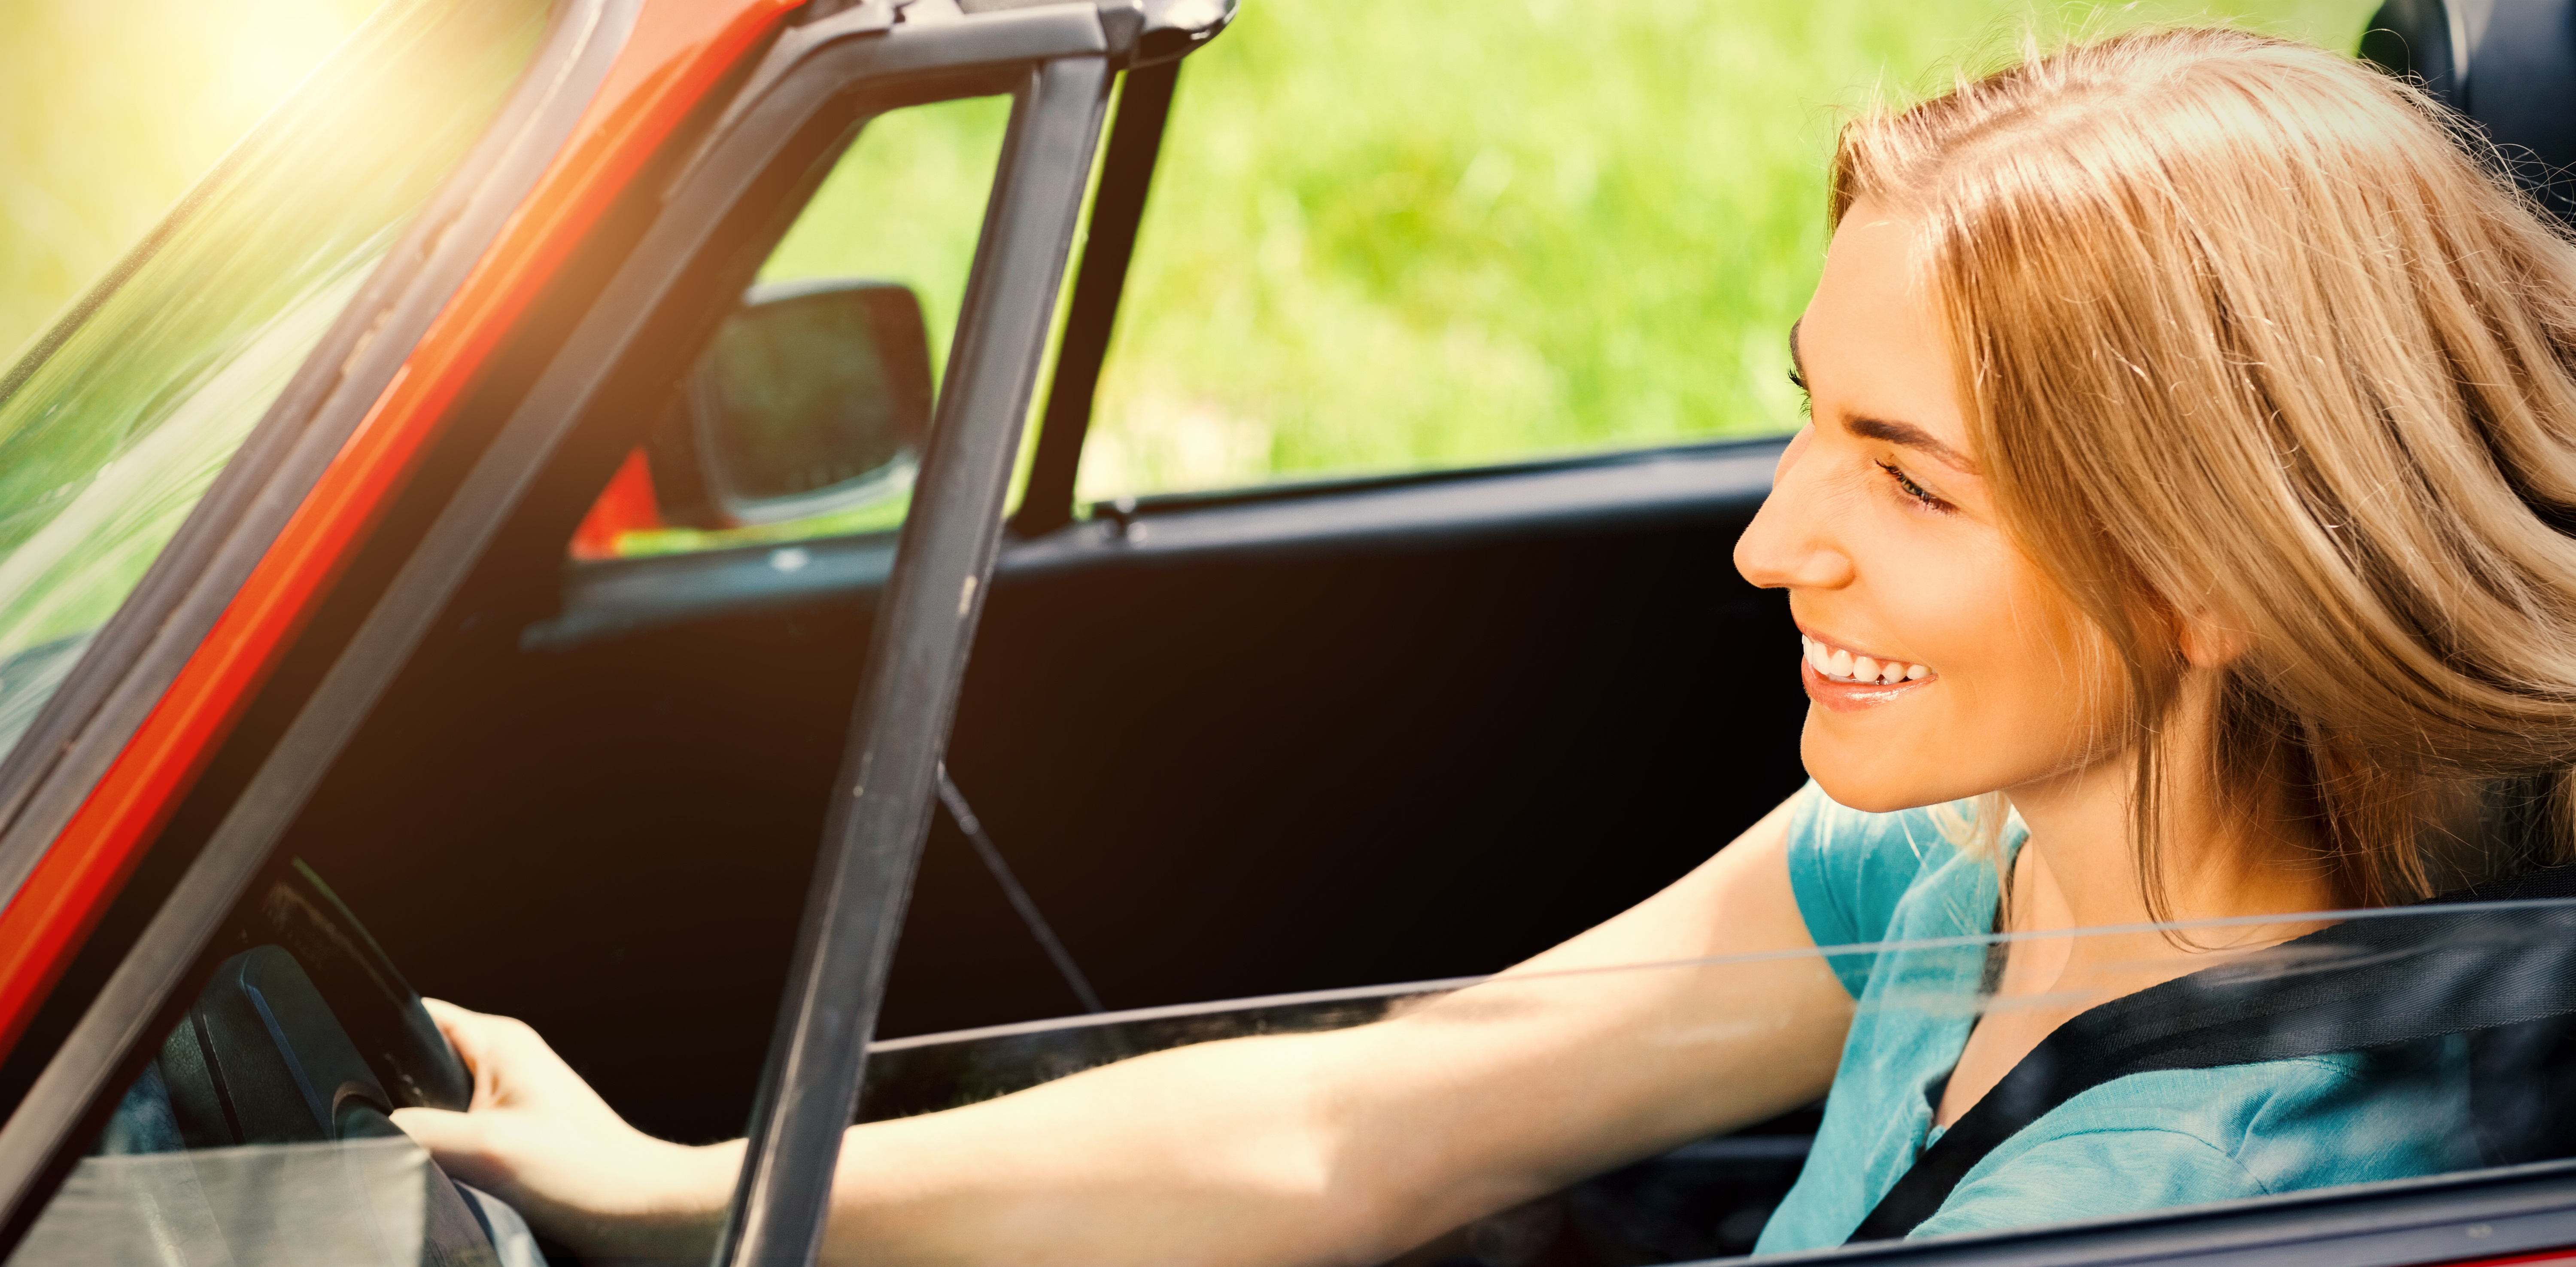 Smiling beautiful woman driving red cabriolet during sunny day